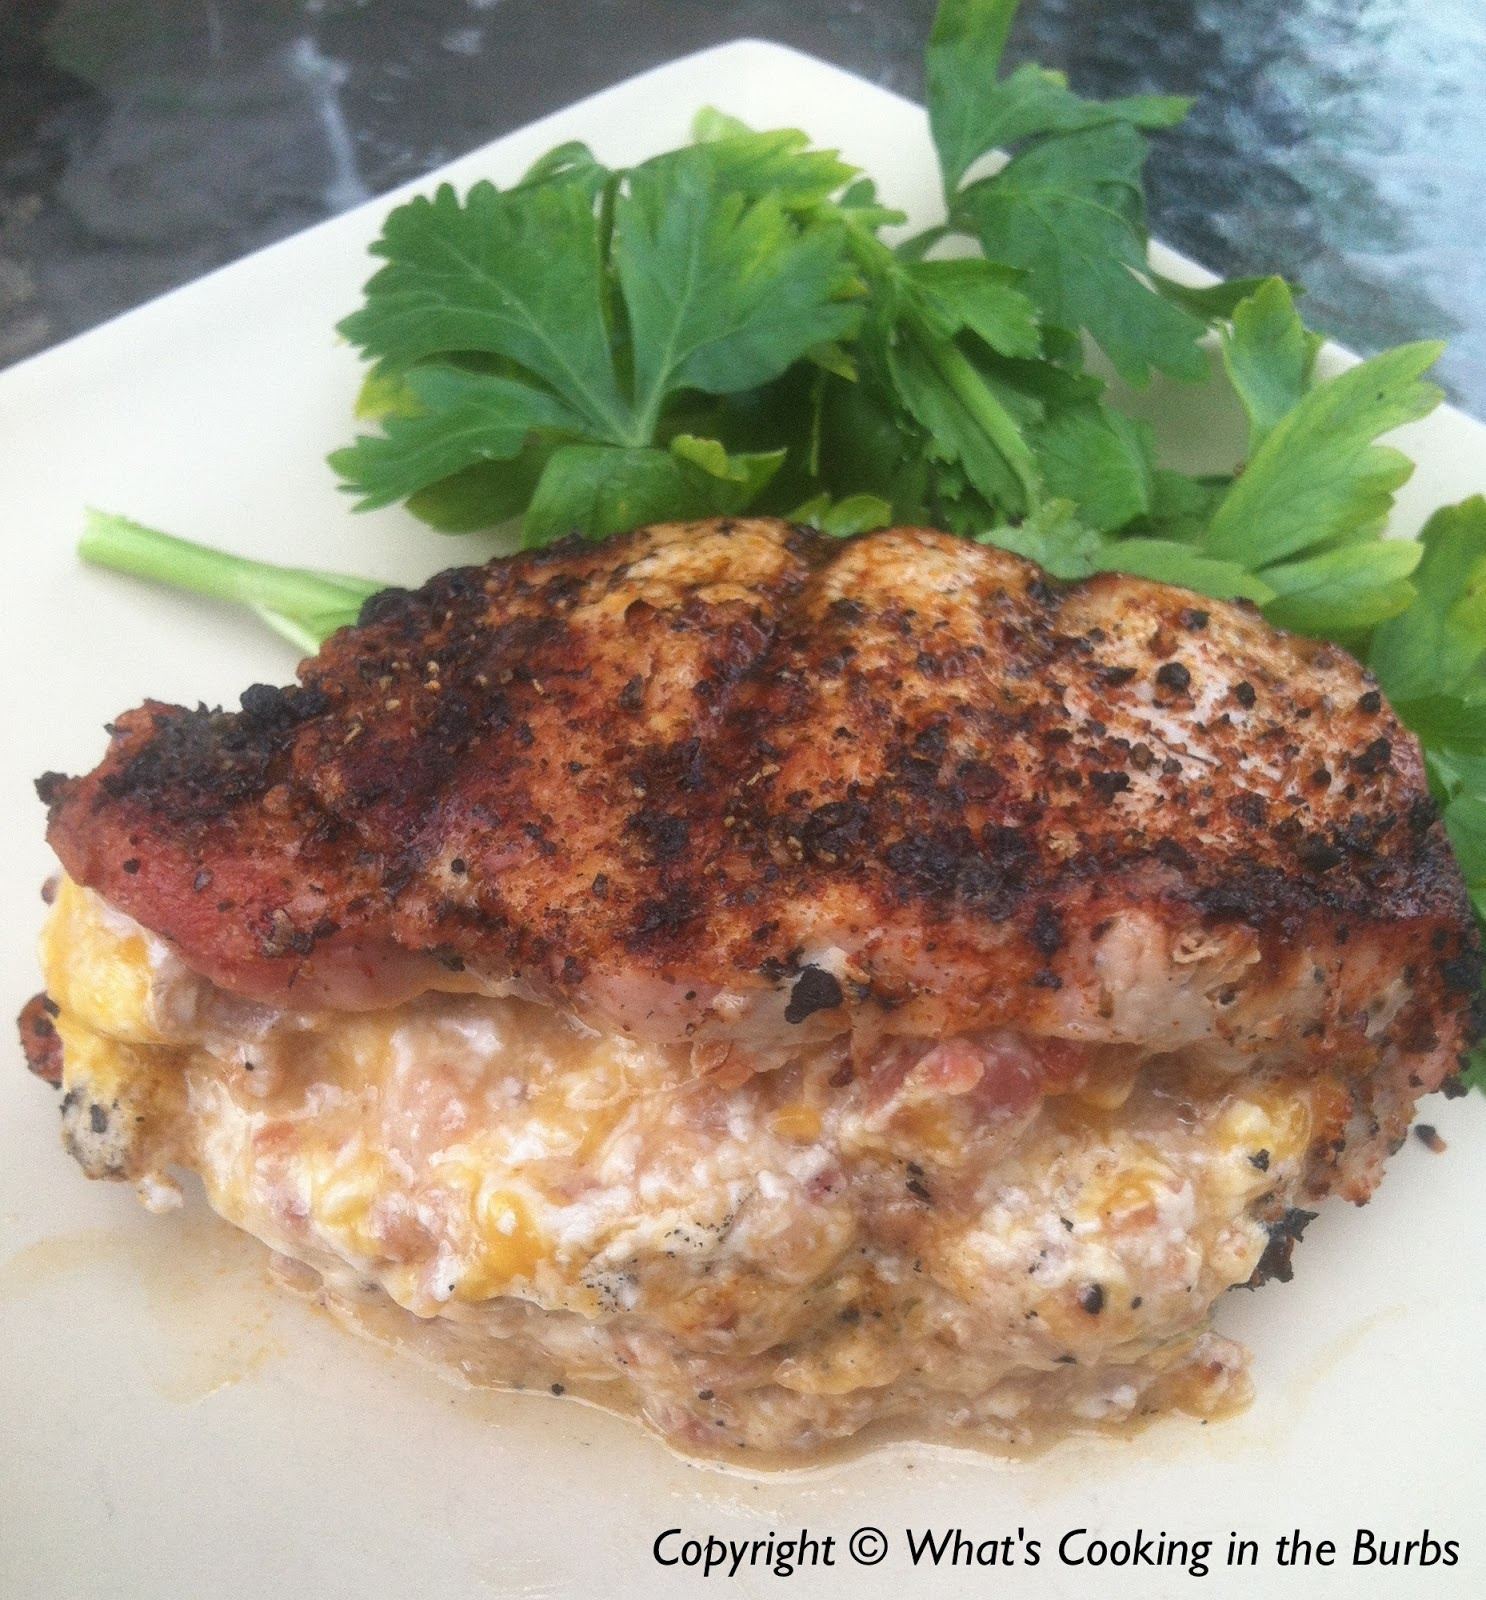 ... cooking in the burbs: Bacon and Cheese Stuffed Southwest Pork Chops